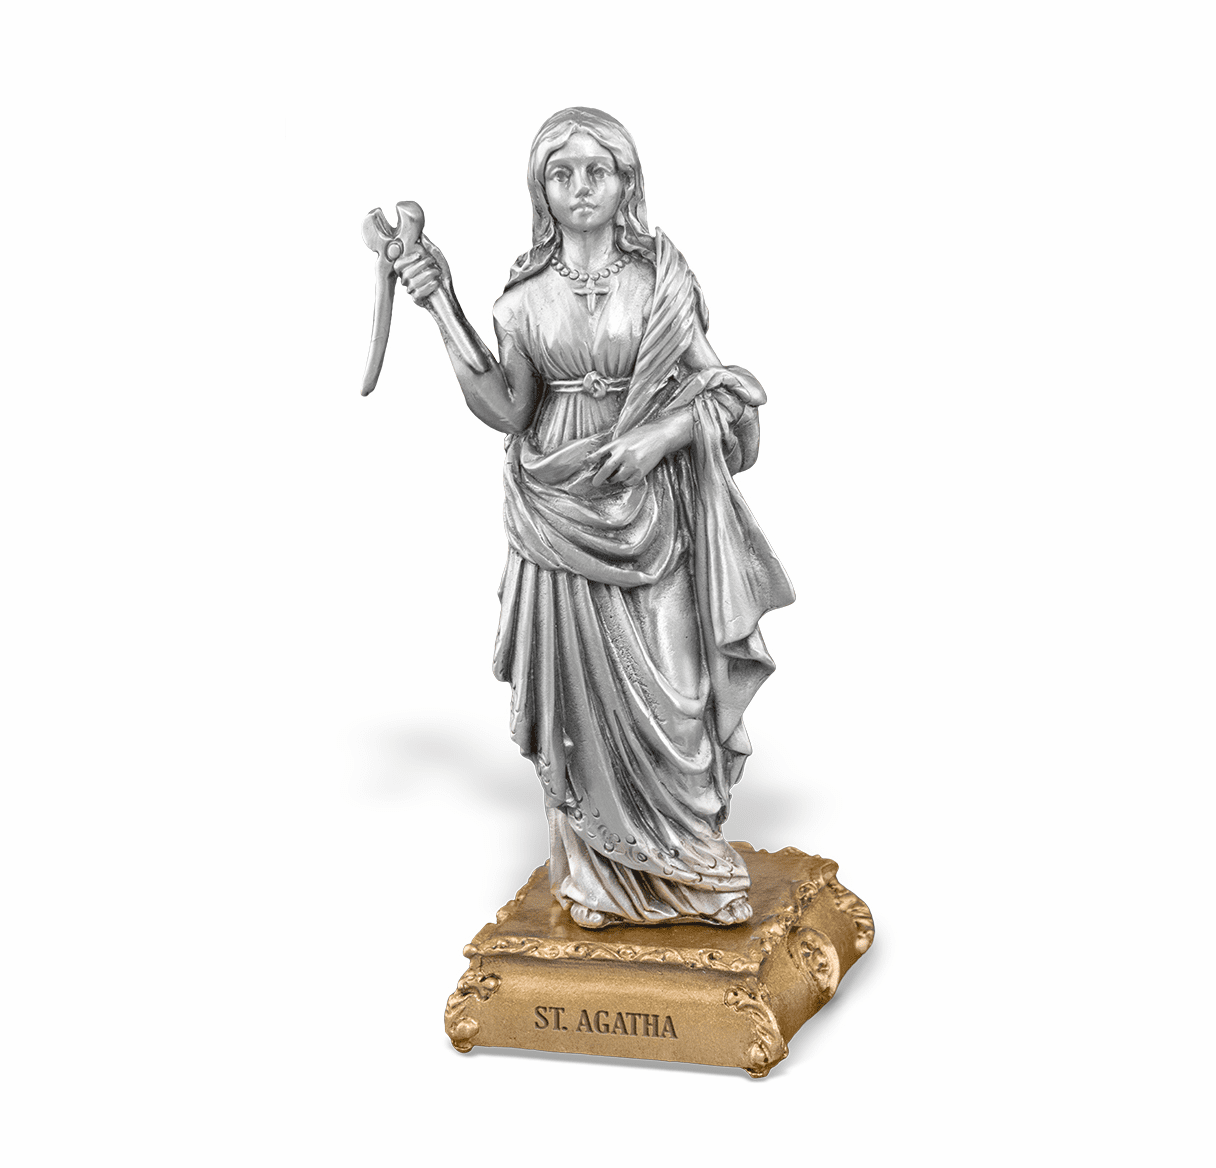 St Agatha Patron Saint Pewter Statue on Gold Tone Base by Hirten